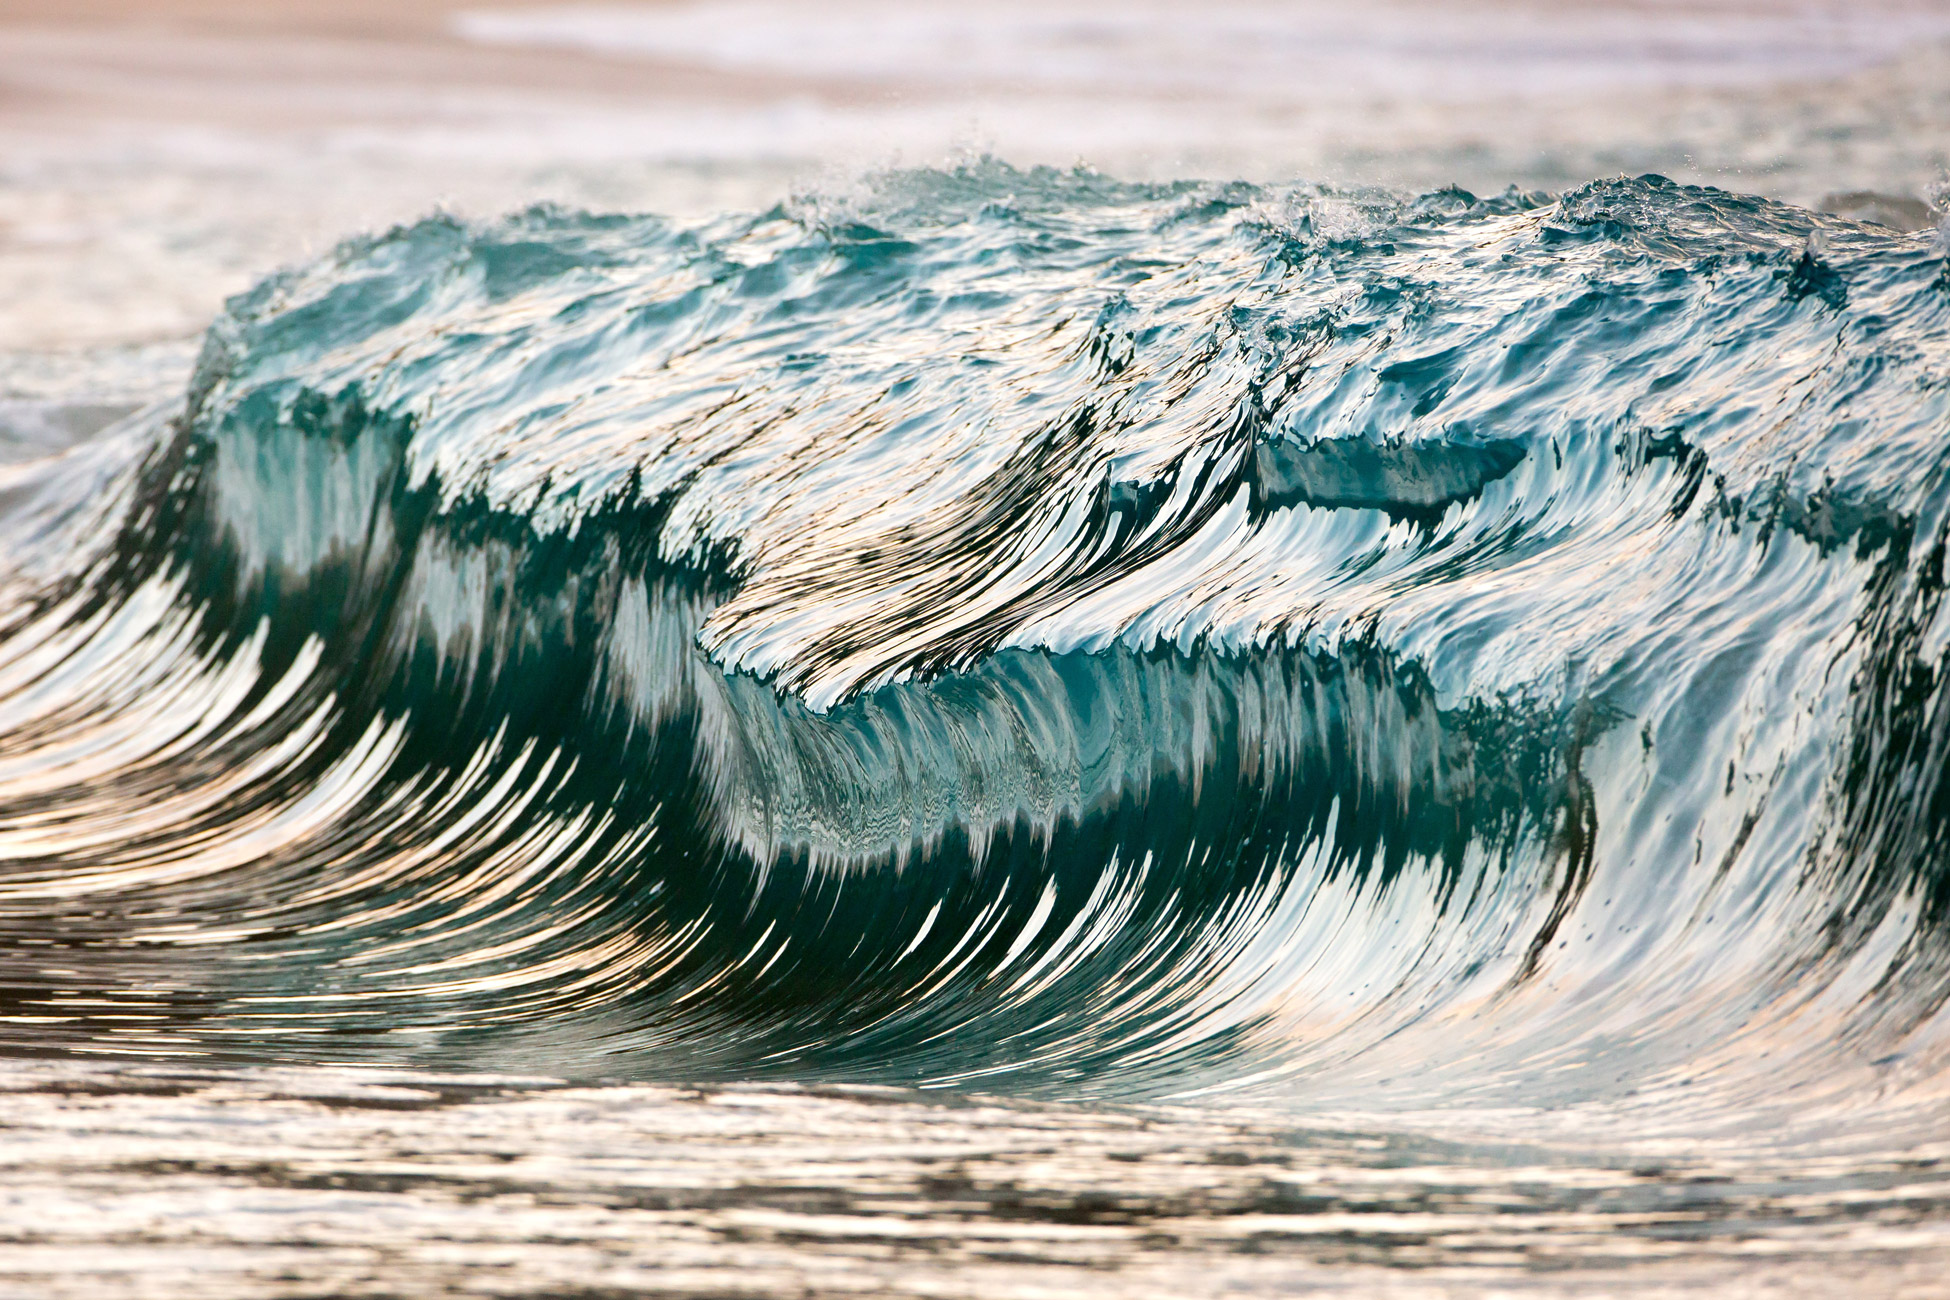 breathtaking photos of waves frozen in time by pierre With carreau pierre